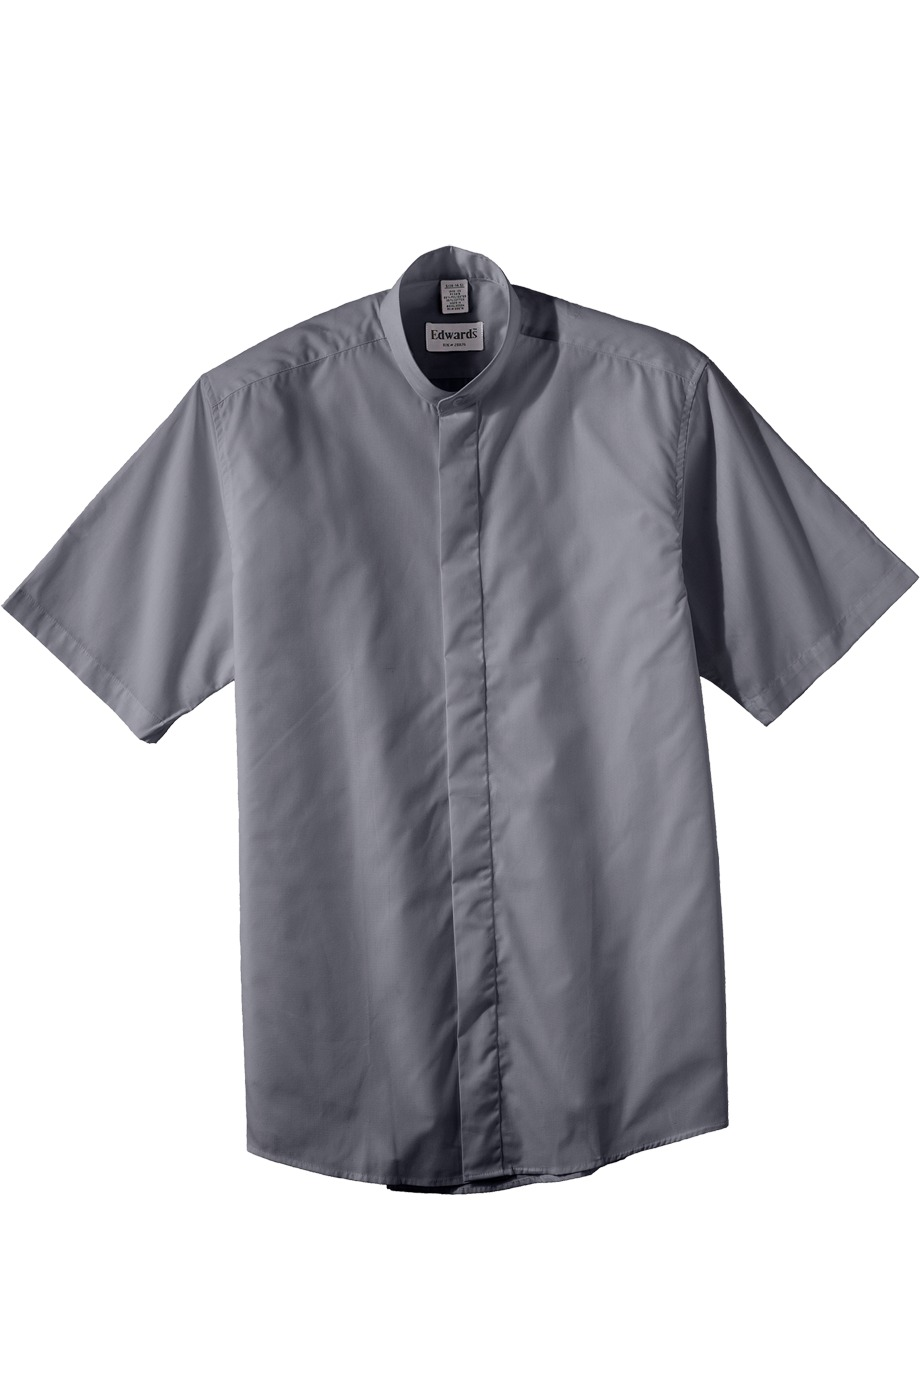 Edwards garment 1346 men 39 s short sleeve banded collar for Mens big and tall banded collar shirts